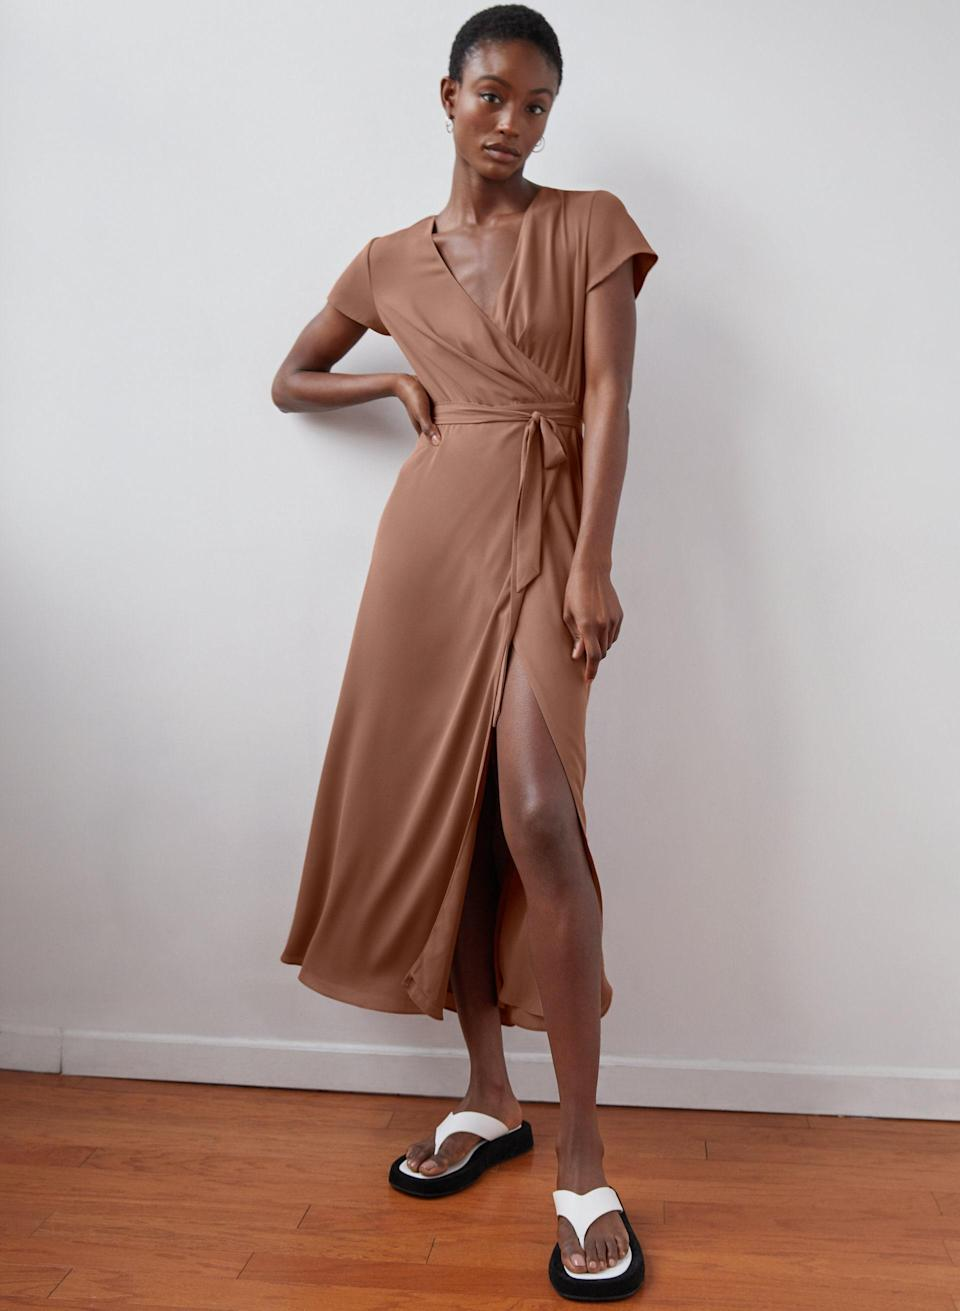 """This classic slit wrap dress comes in three neutral colors—so you'll find a match for any bridal party. $128, Aritzia. <a href=""""https://www.aritzia.com/us/en/product/slit-wrap-dress/70955.html?dwvar_70955_color=3657"""" rel=""""nofollow noopener"""" target=""""_blank"""" data-ylk=""""slk:Get it now!"""" class=""""link rapid-noclick-resp"""">Get it now!</a>"""